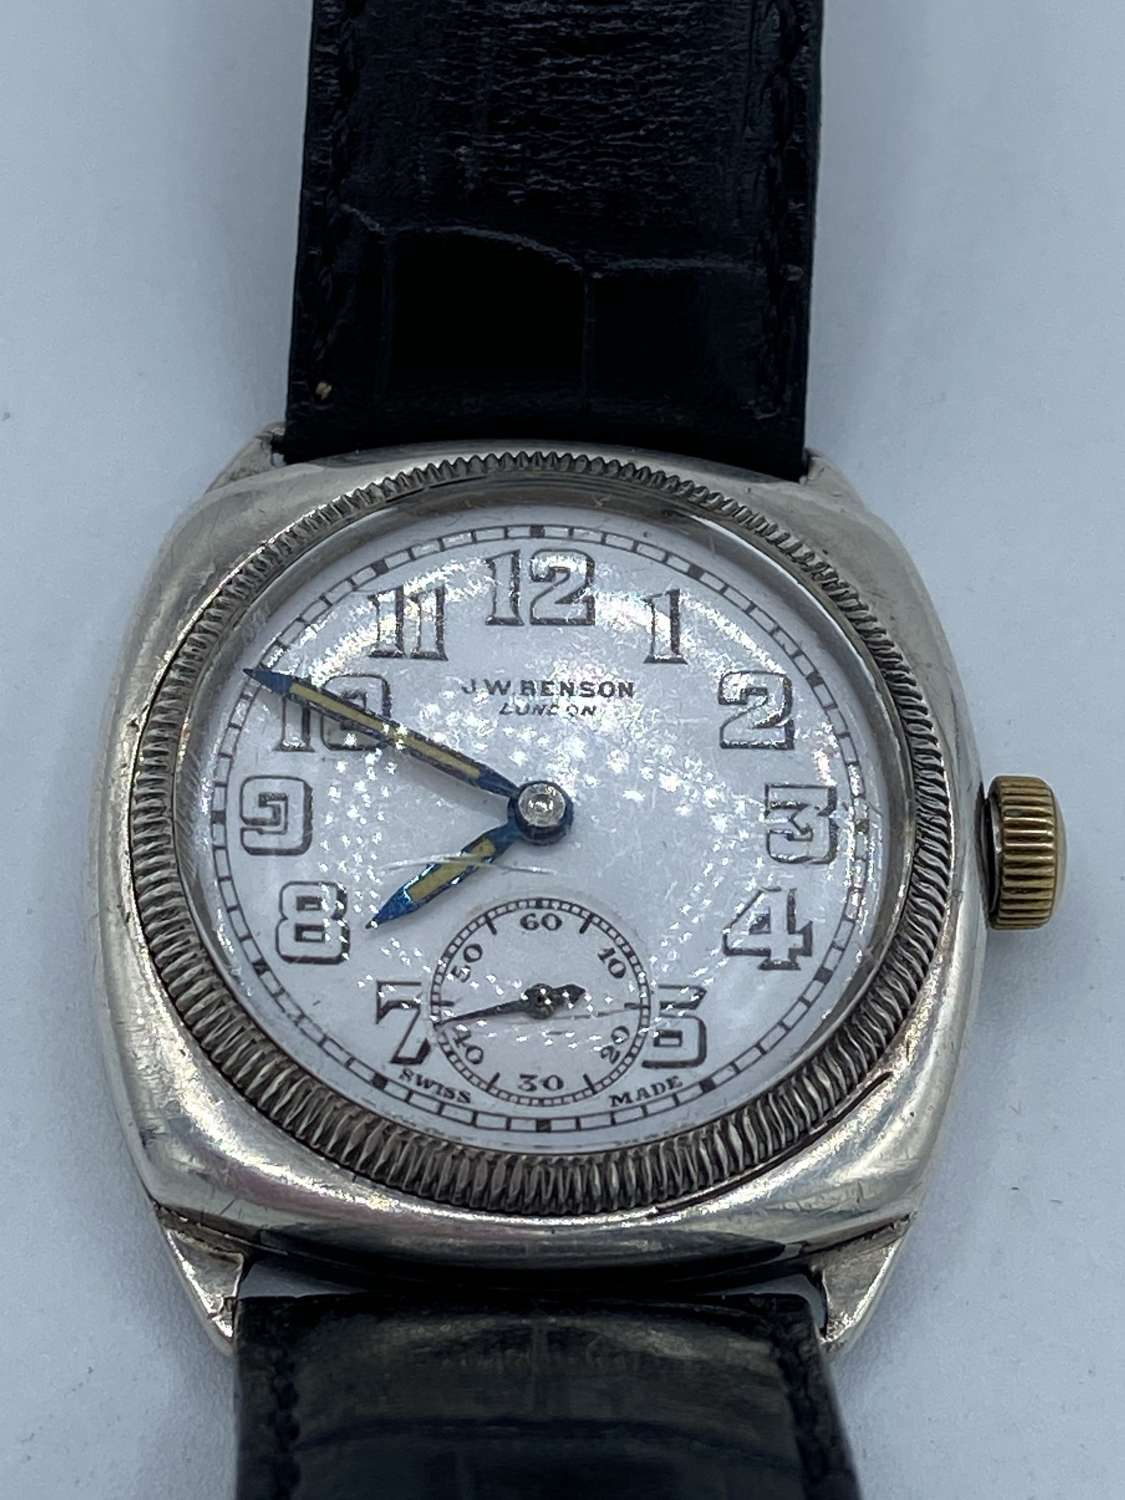 1928 Dated British Royal Navy Contract 925 Silver Watch J W Benson